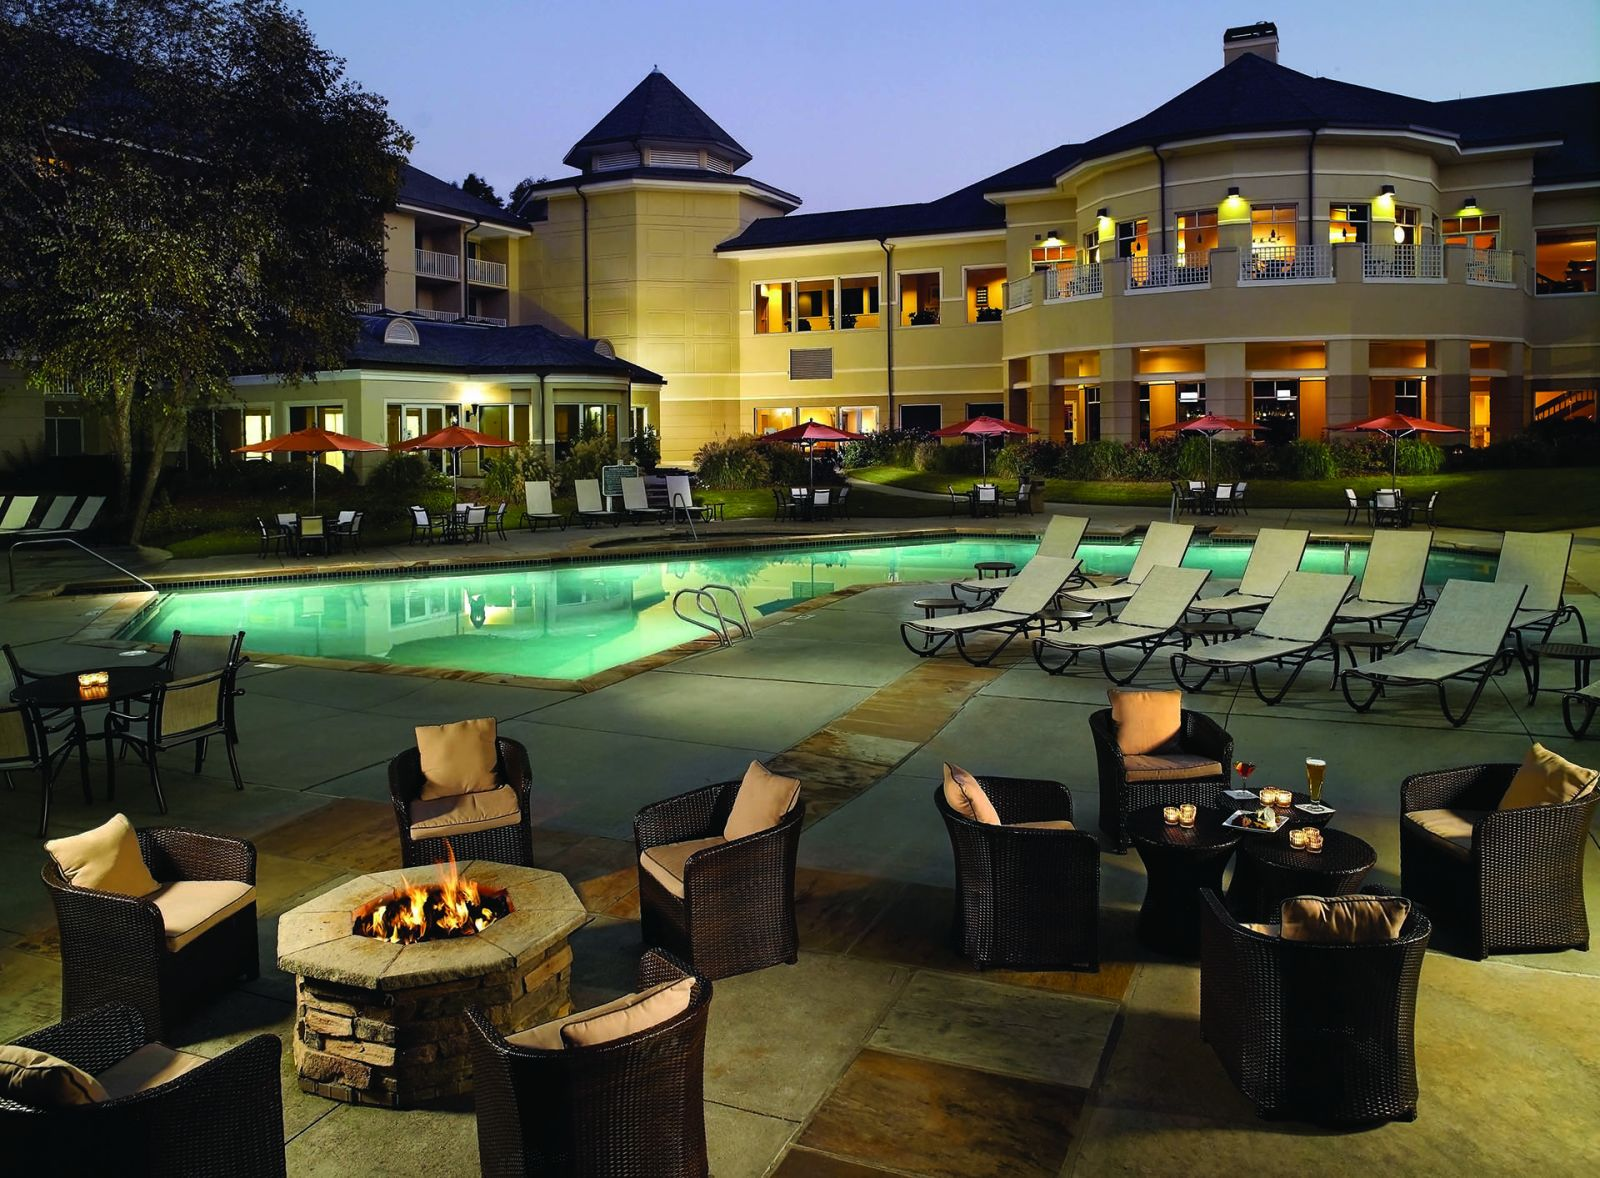 A view of the outdoor swimming pool area at Atlanta Evergreen Marriott Conference Resort